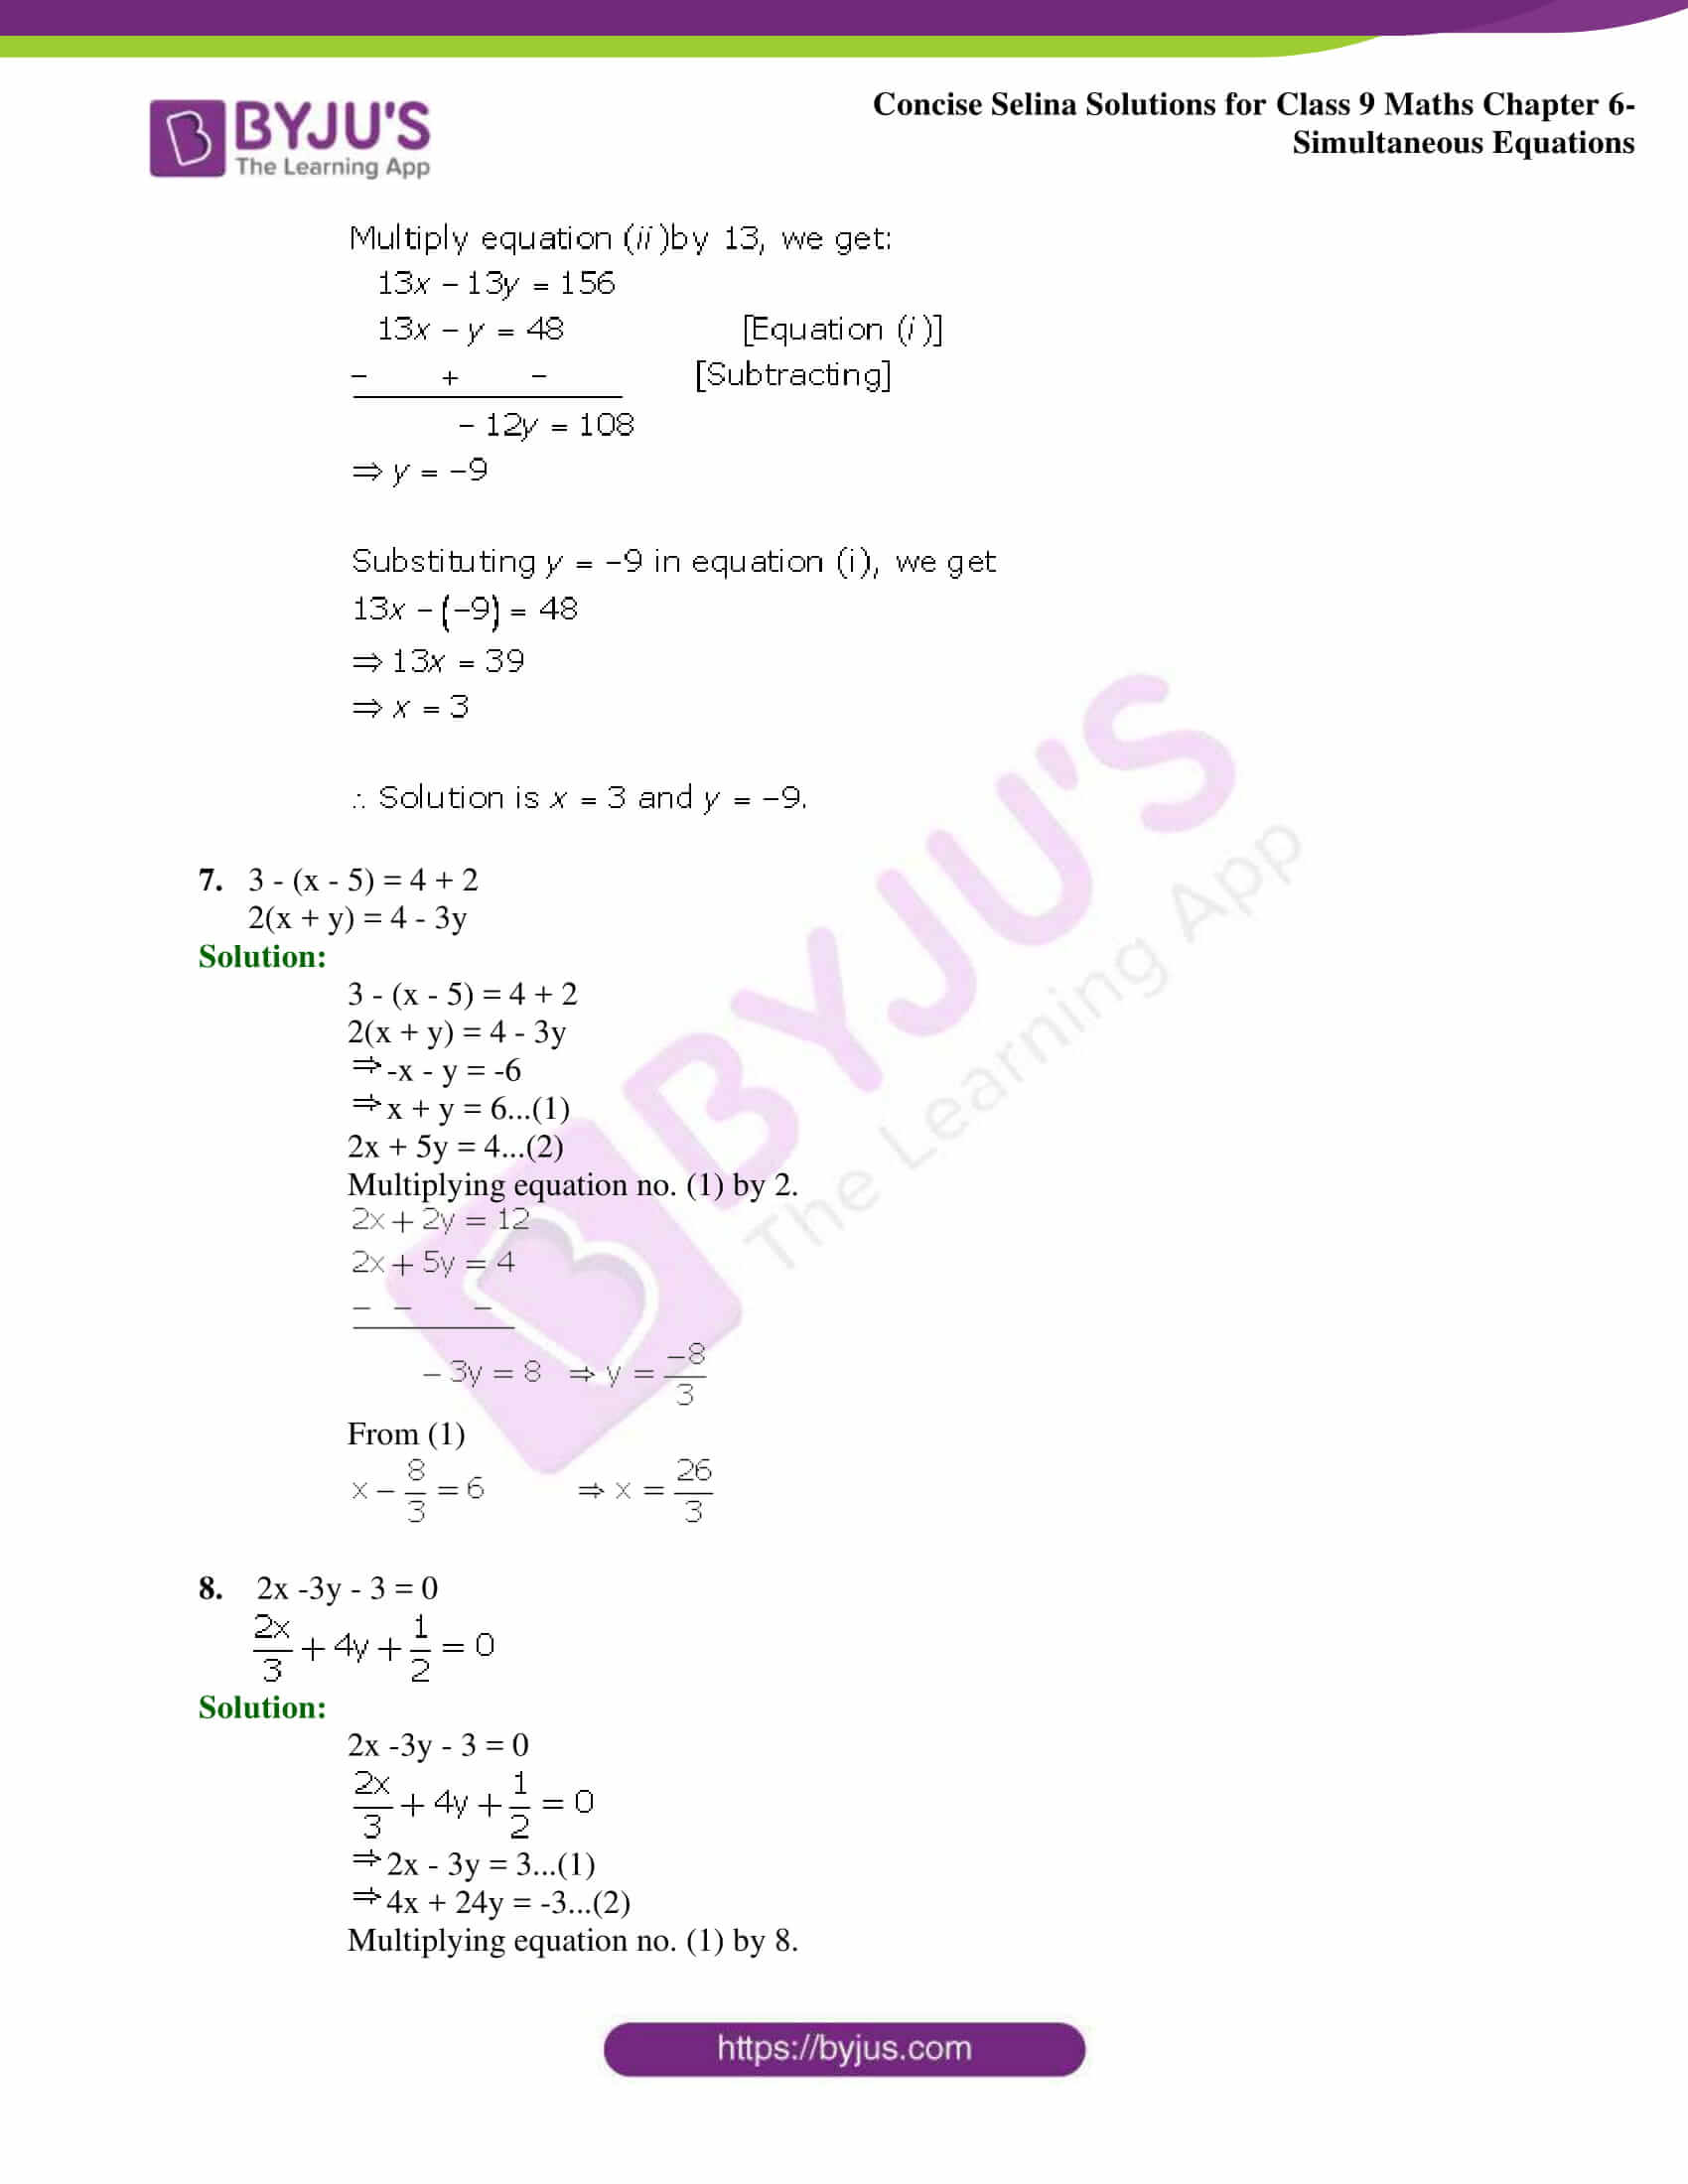 Selina Solutions Class 9 Maths Chapter 6 Simultaneous Equations part 13